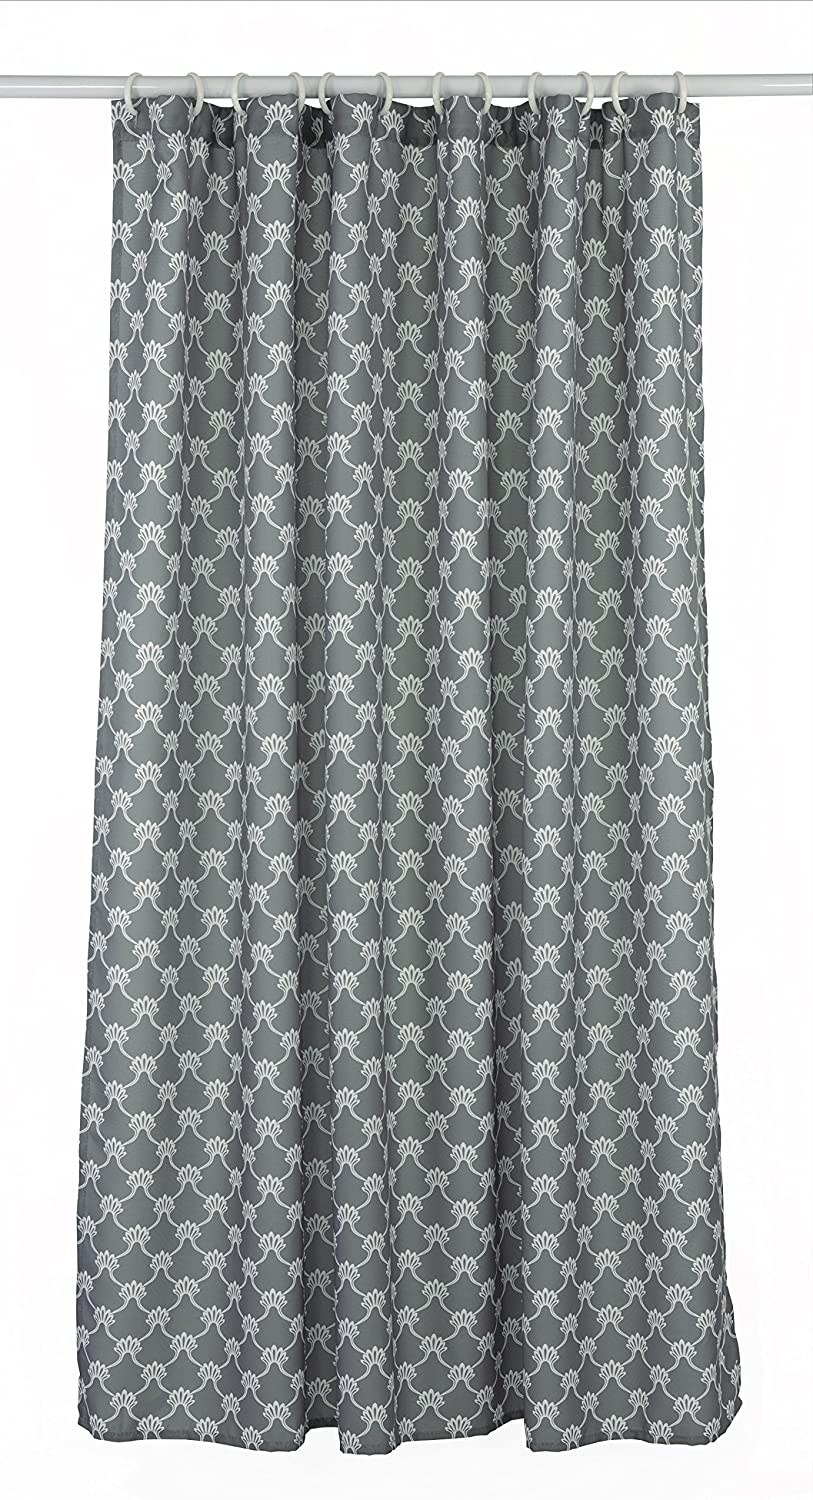 LJ Home Fashions 286 Manhattan Geometric Trellis Designed Shower Curtain Liner and Ring Set (14 Pieces) Charcoal Grey/White